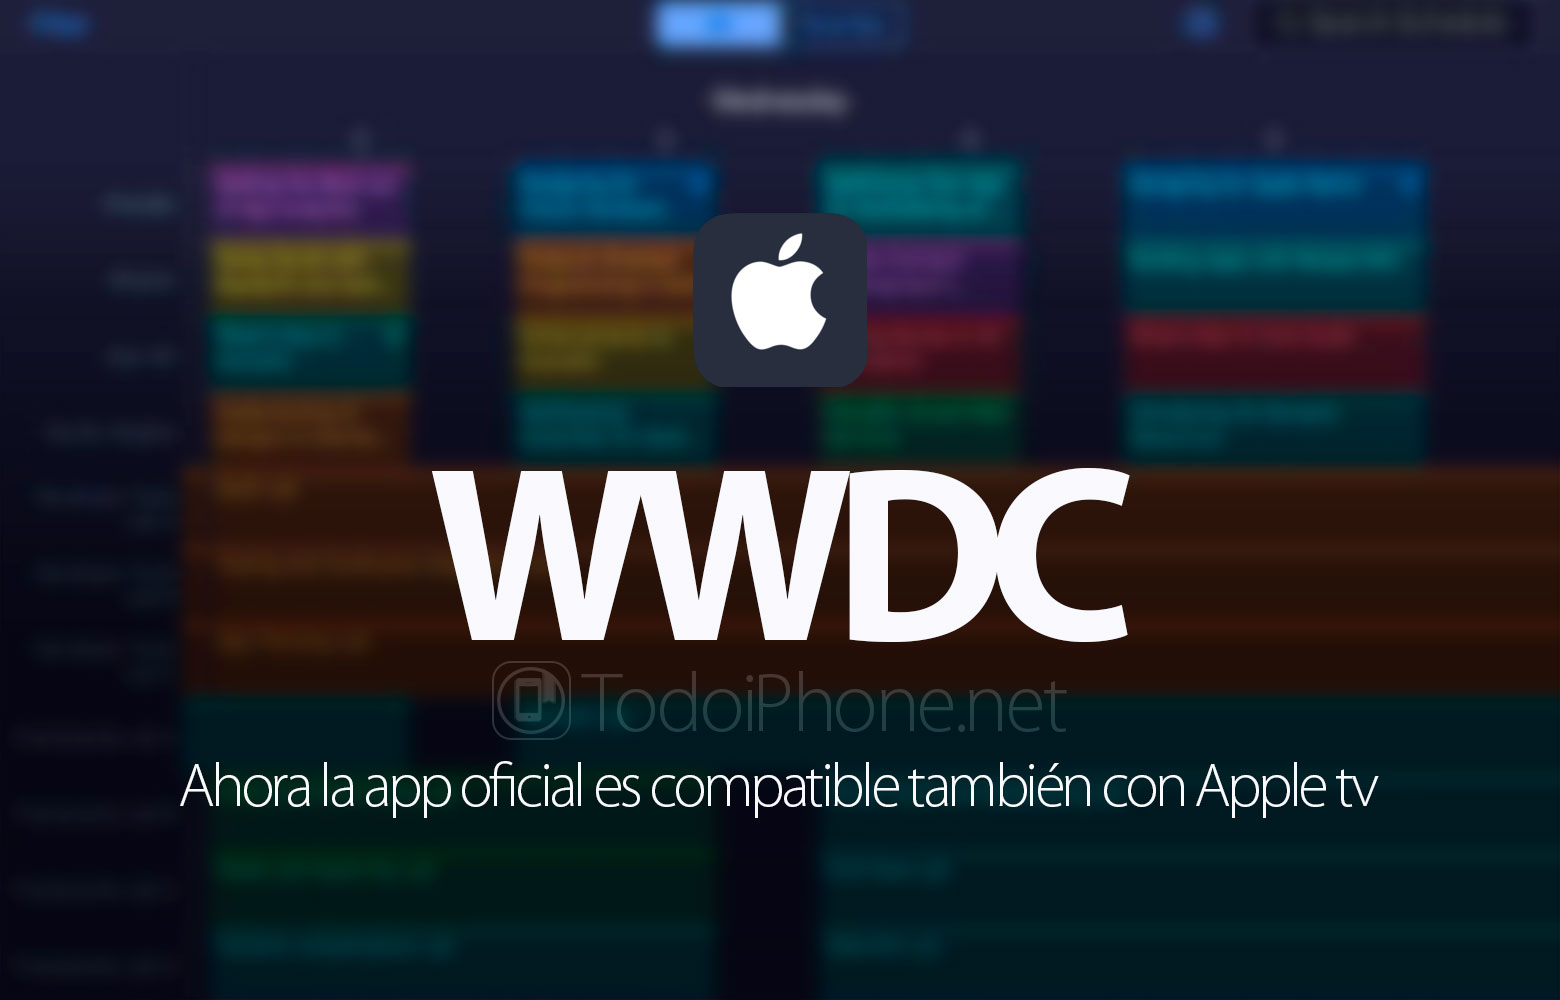 wwdc-2016-app-oficial-compatible-apple-tv